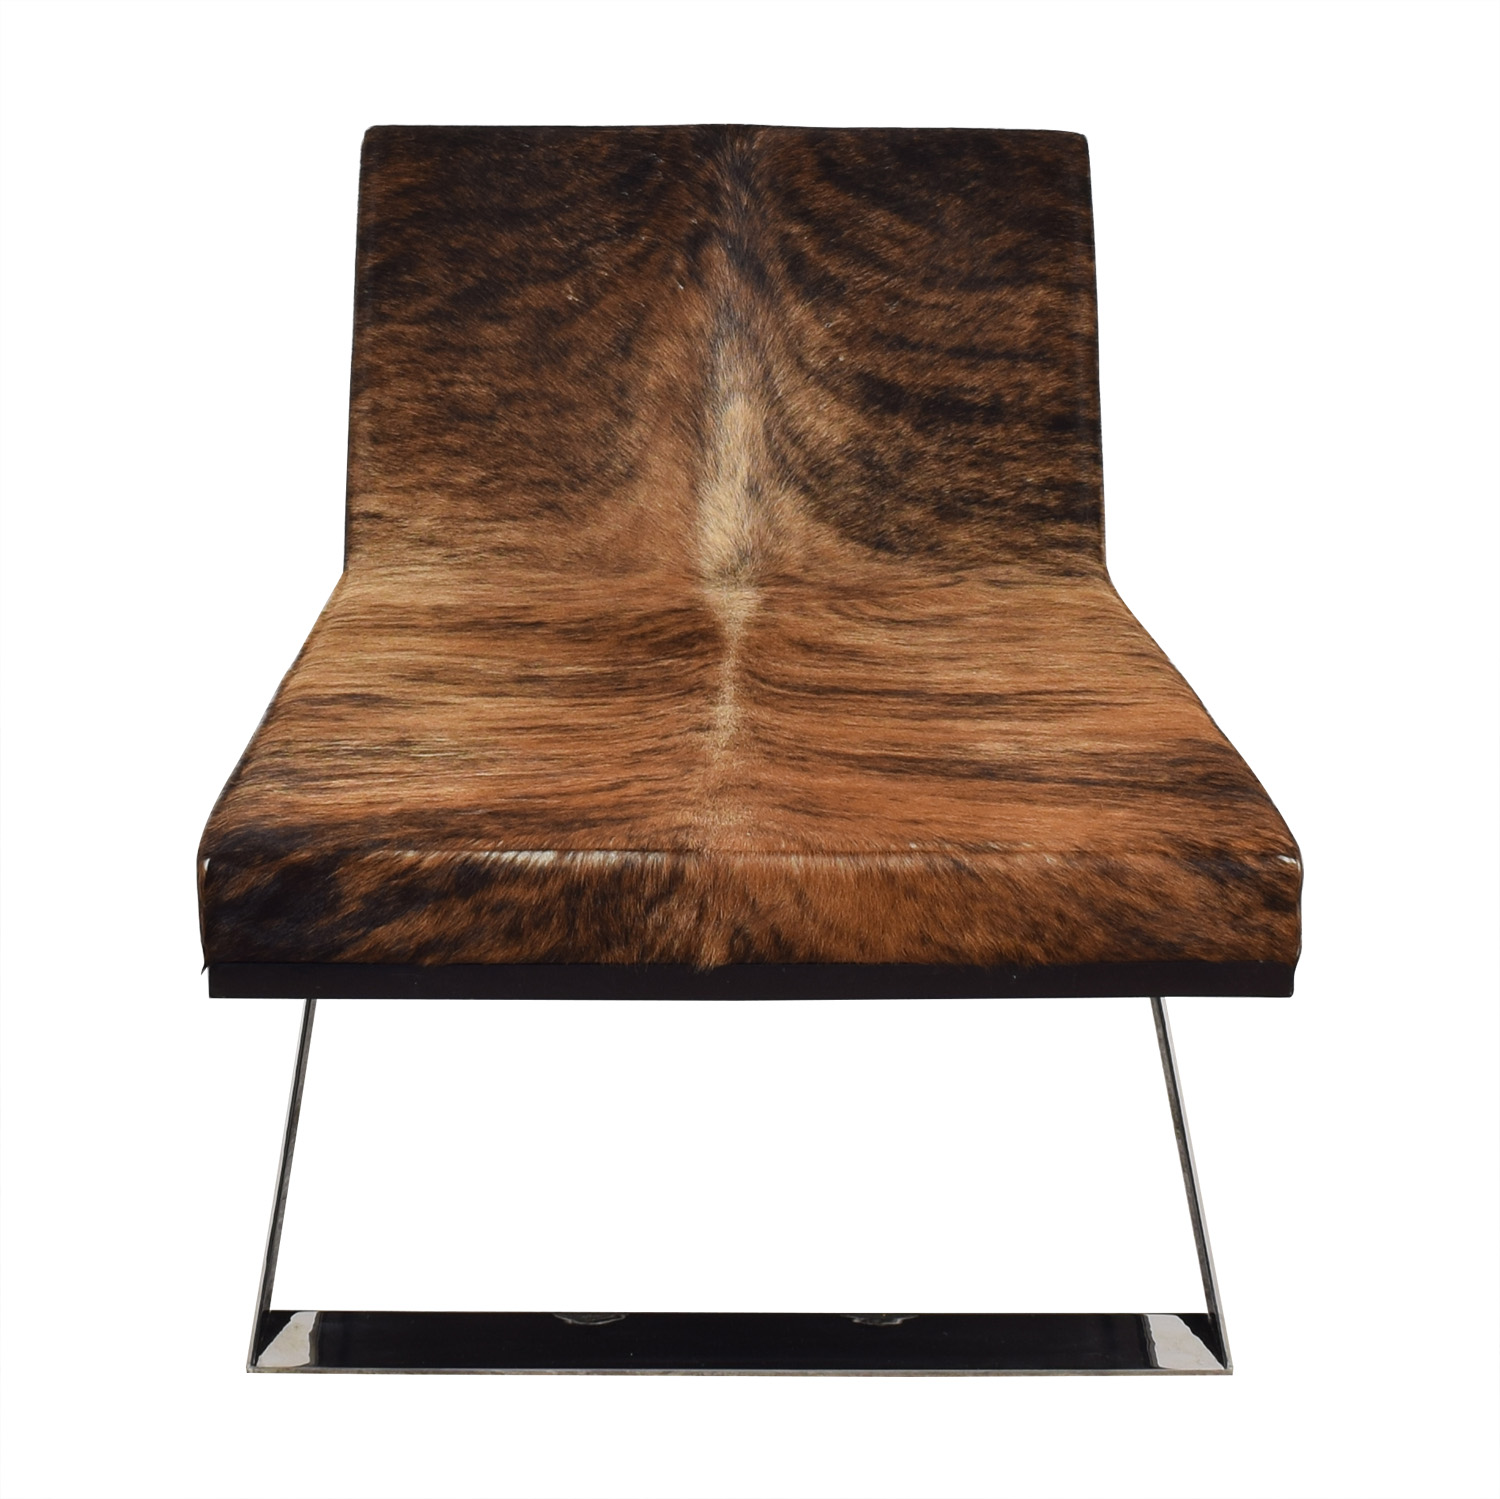 buy Moura Starr Kalup Chaise Lounge in Araca Cow Hide Moura Starr